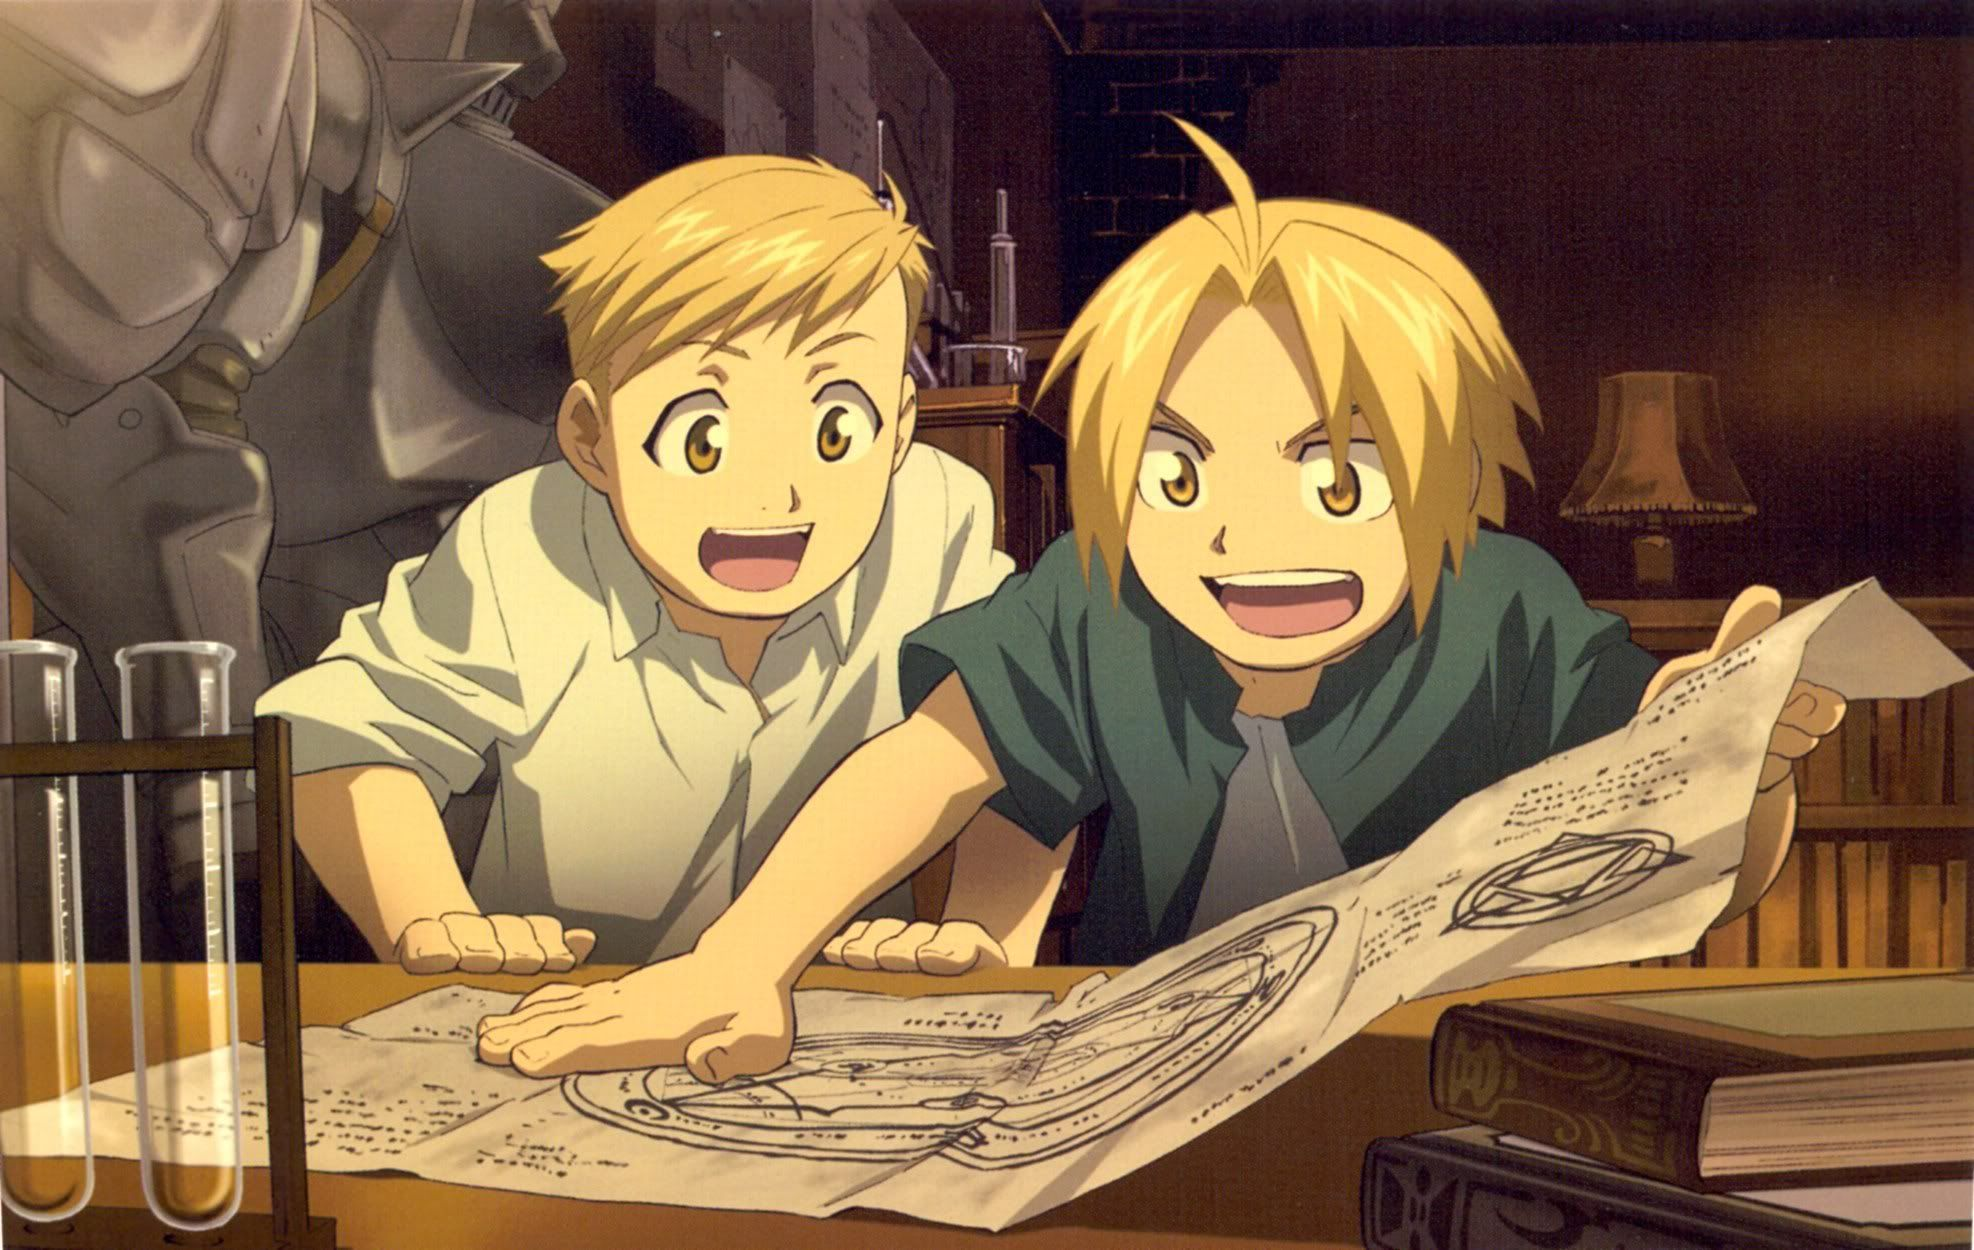 fullmetal alchemist Fullmetal Alchemist Discussion Board